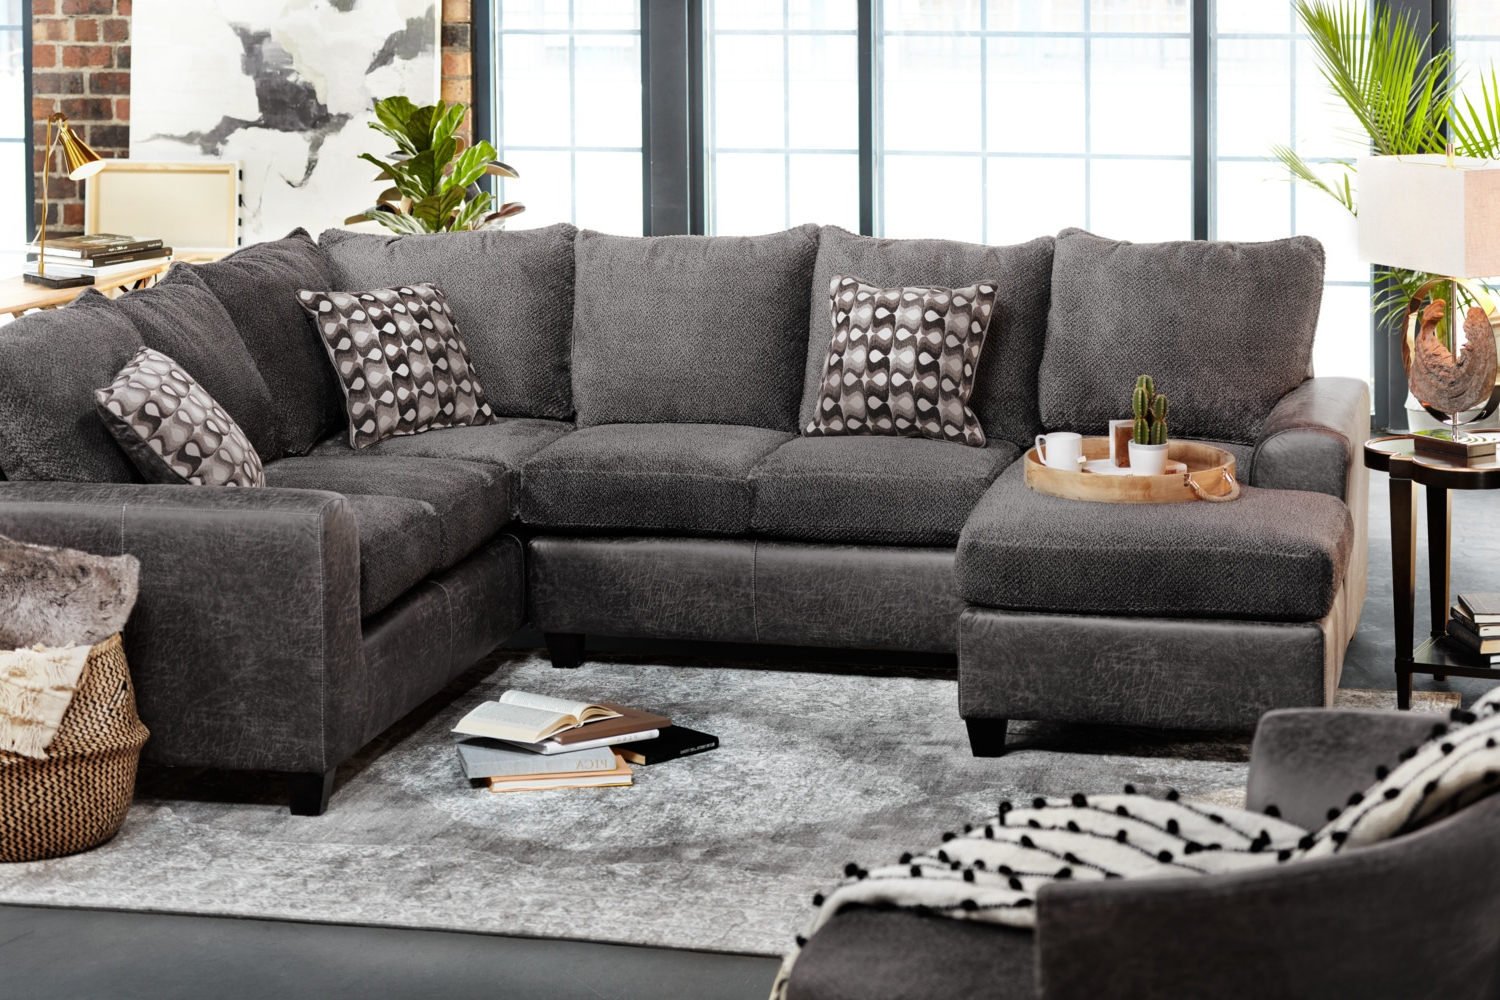 Delano 2 Piece Sectionals With Laf Oversized Chaise Inside Most Current 3 Piece Sectional – Locsbyhelenelorasa (View 9 of 20)